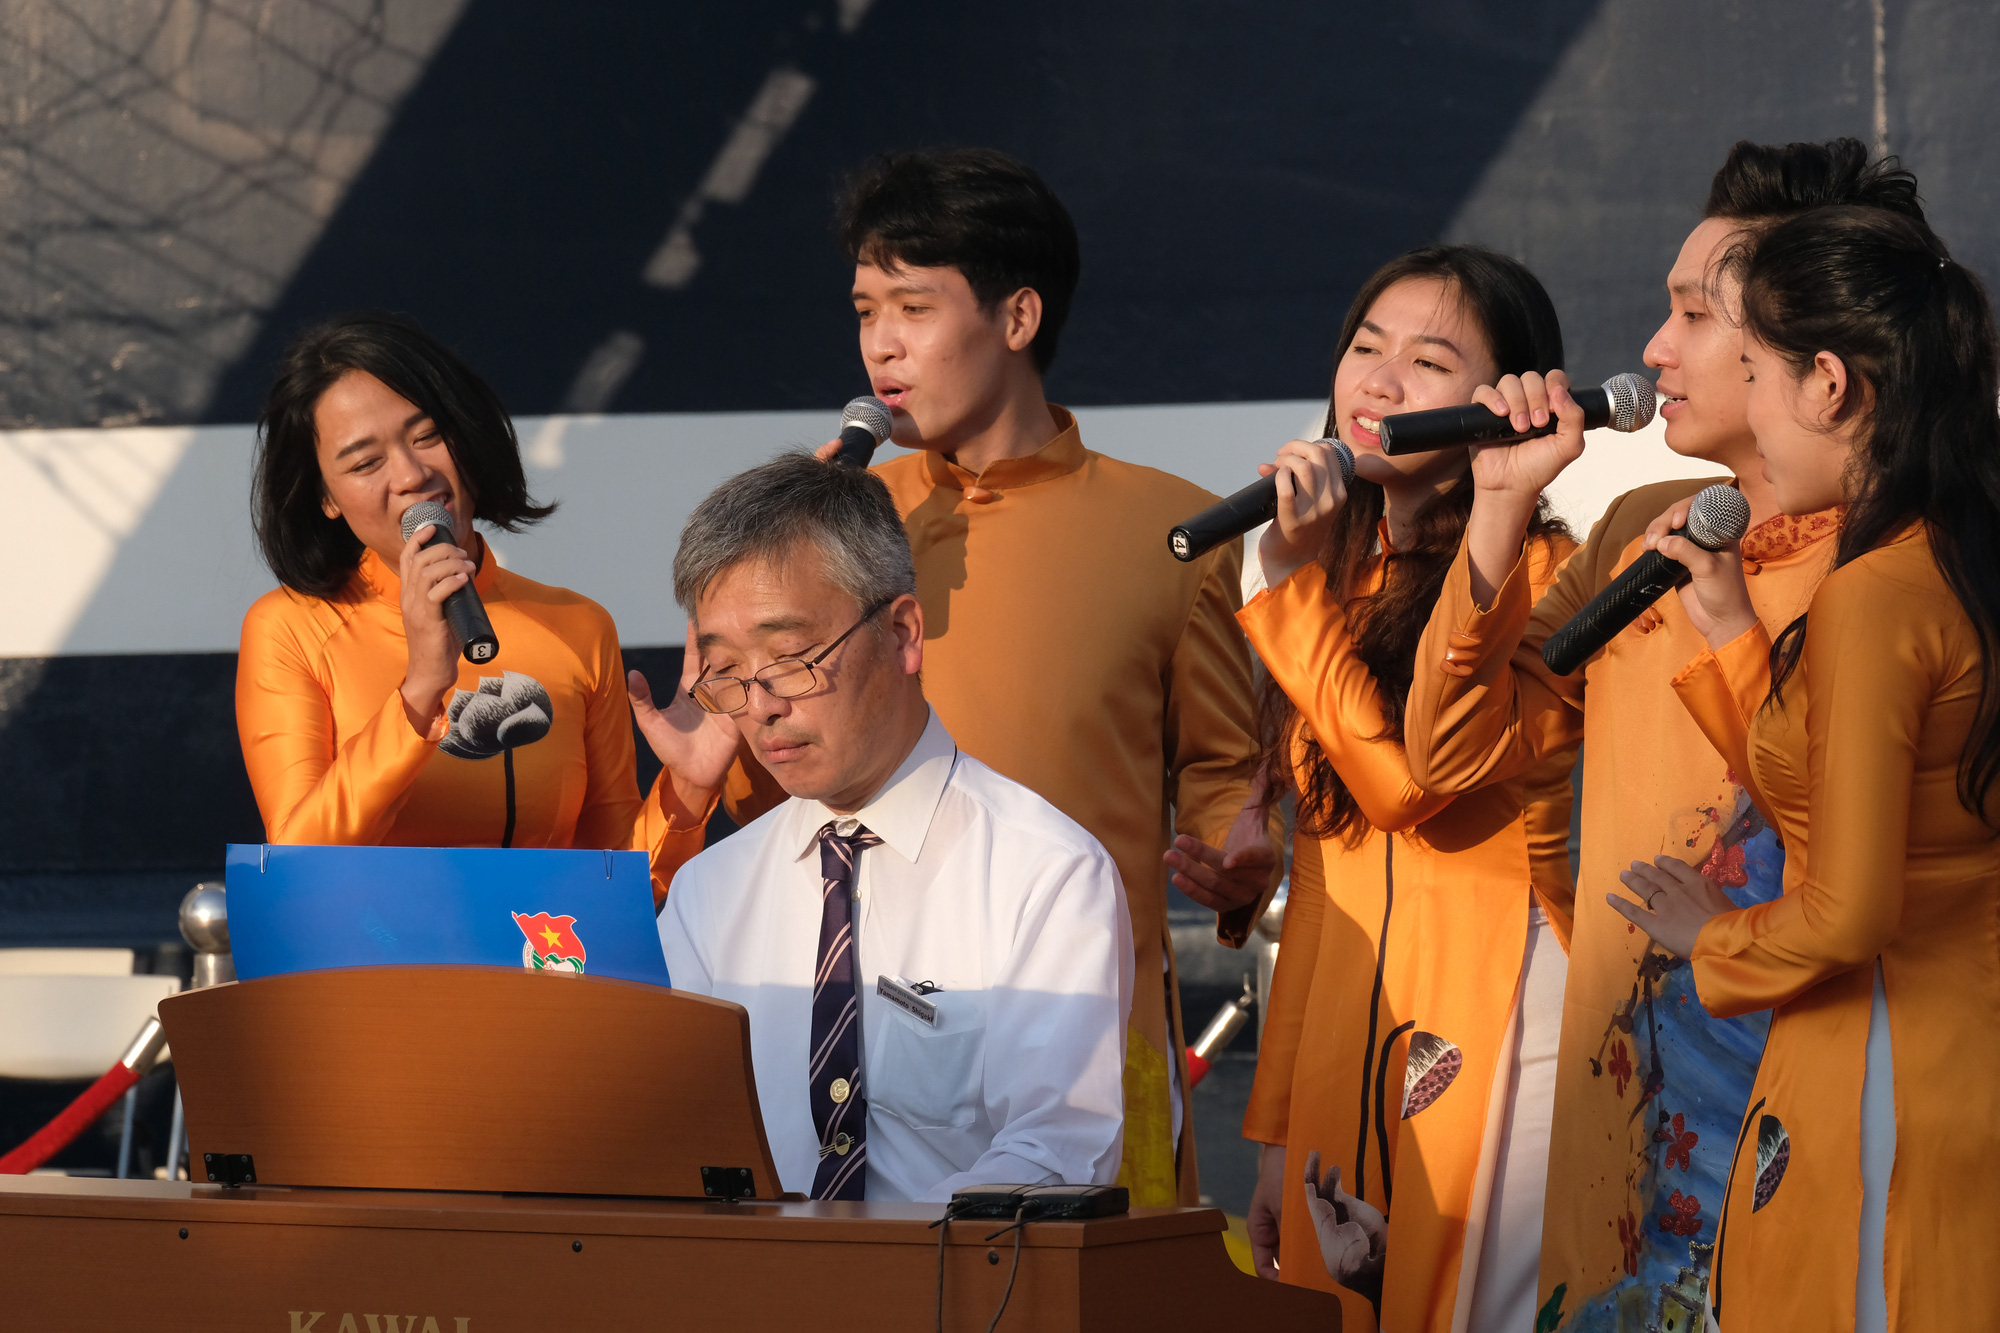 SSEAYP 2019 leader plays piano to bid Ho Chi Minh City farewell